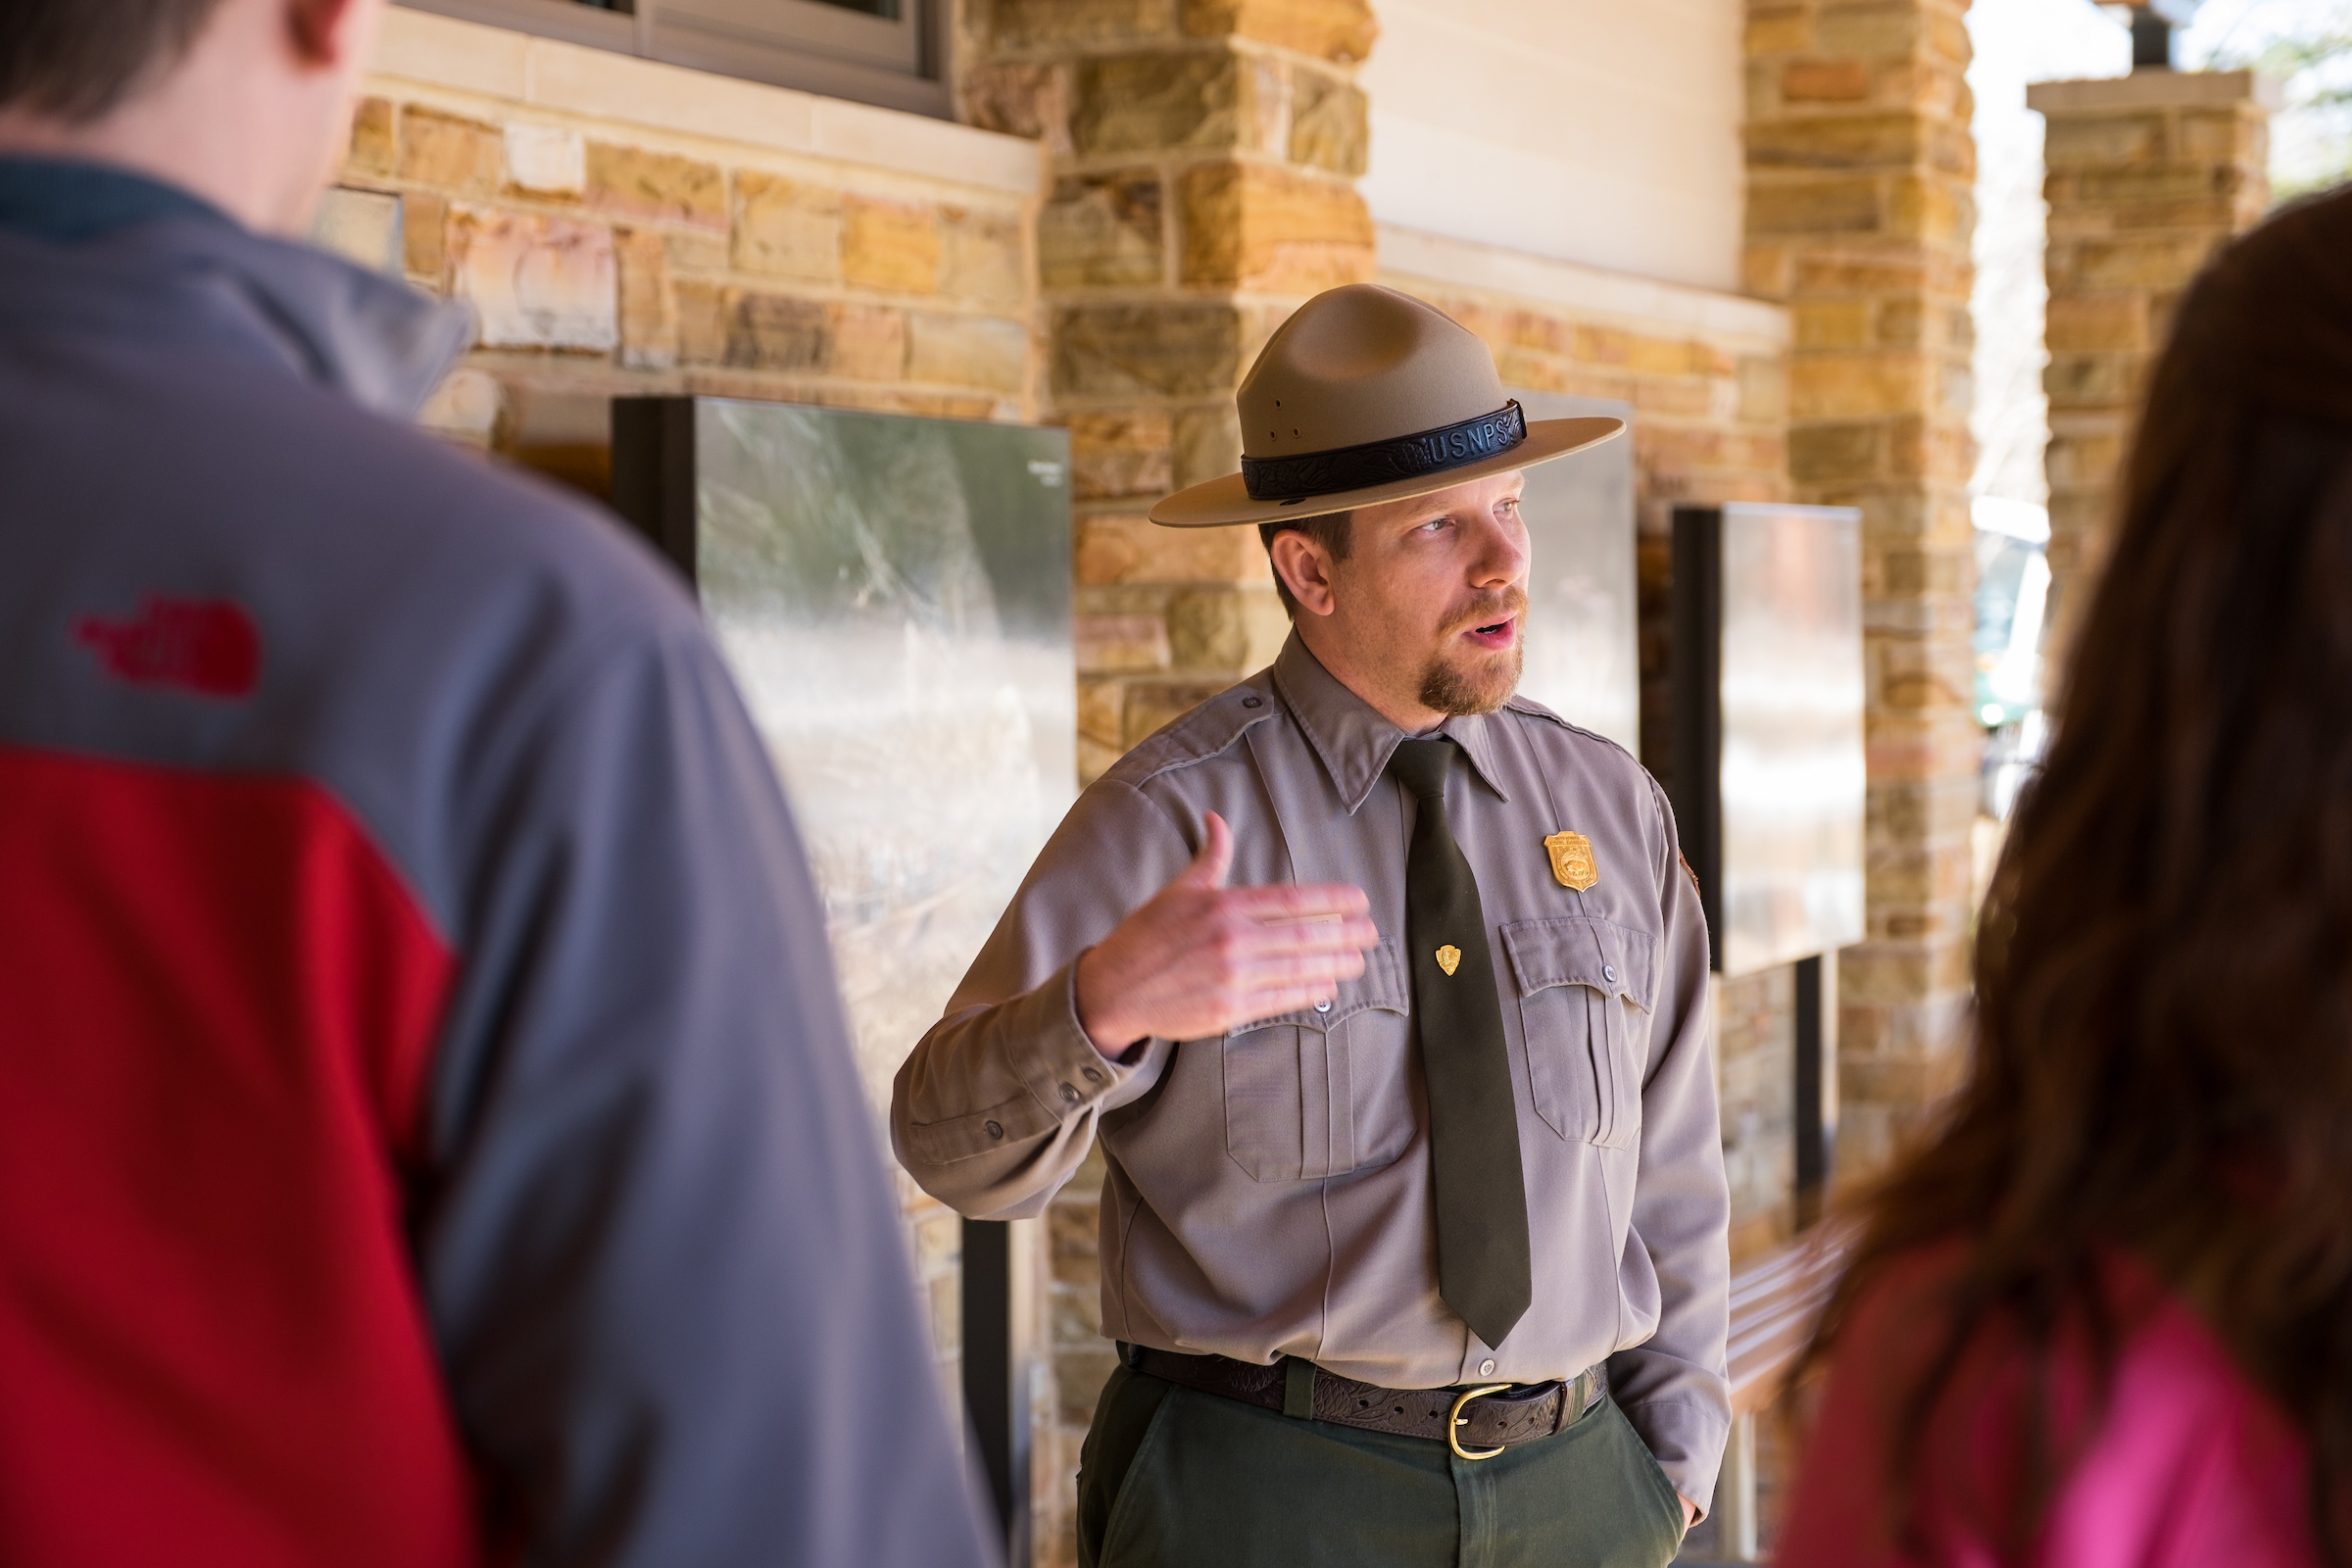 Ranger Jackie at Mammoth Cave National Park in Kentucky walks visitors through the discovery of the largest mapped cave system on Earth.